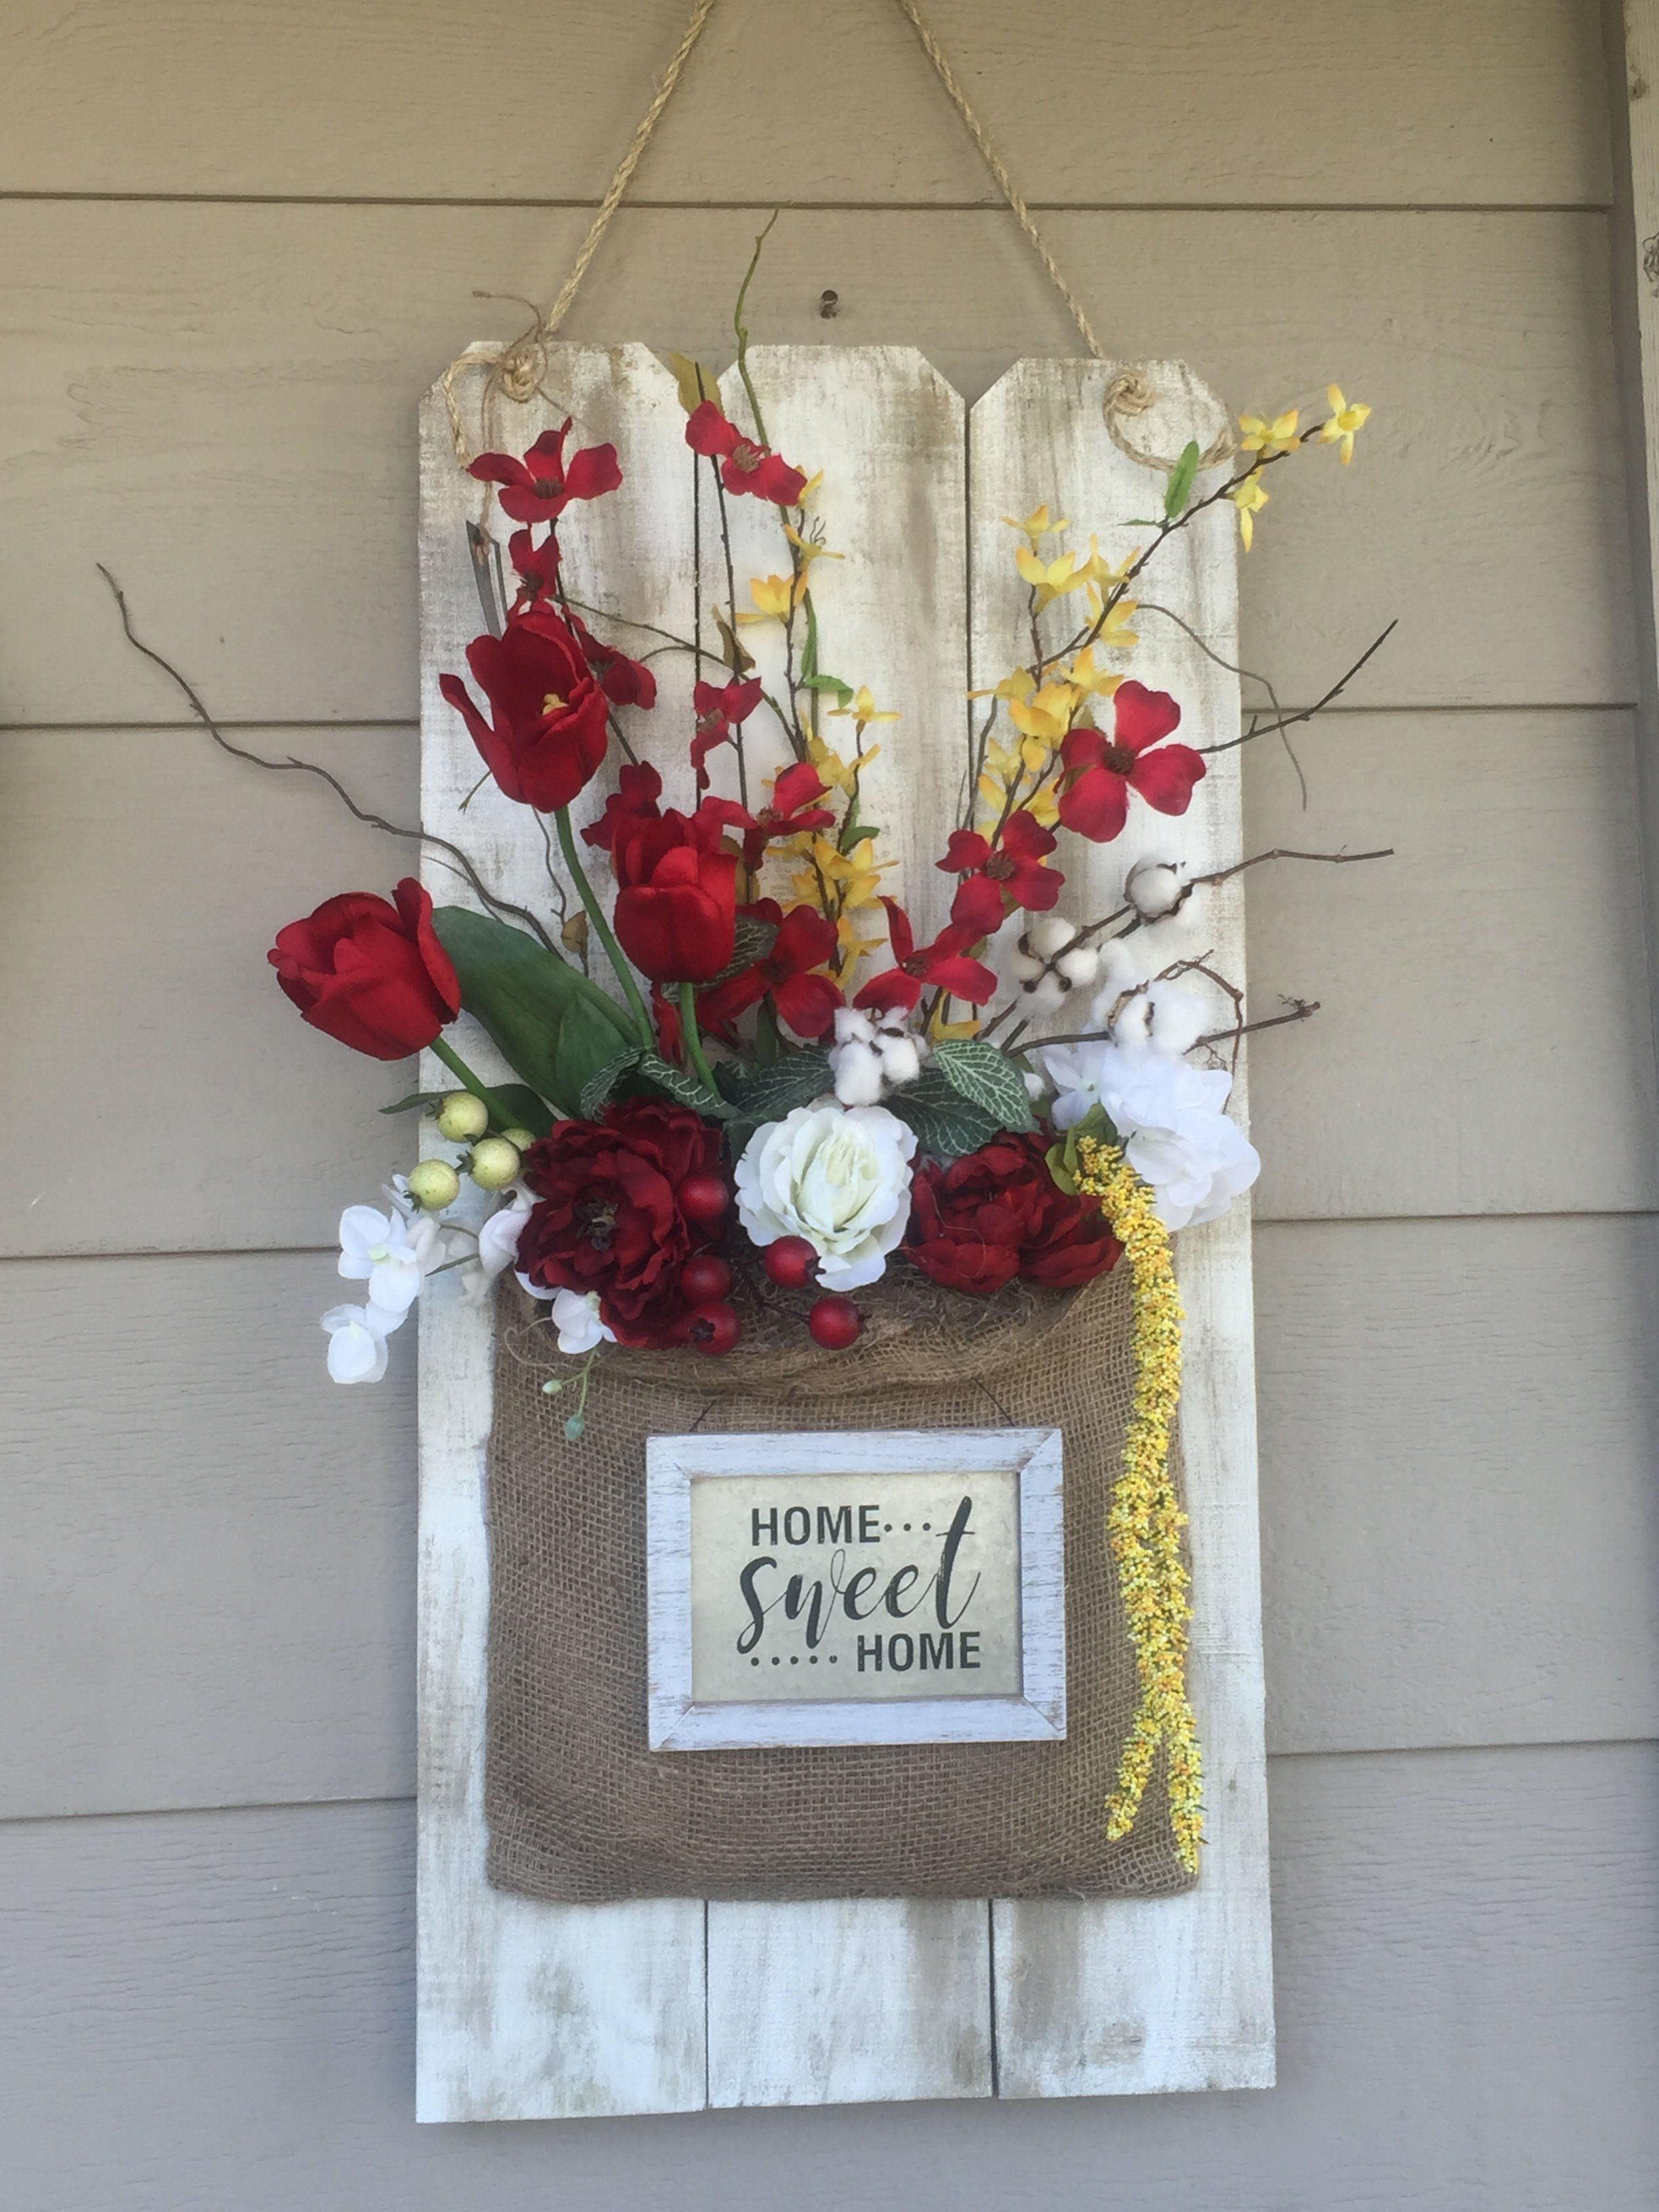 Spring Wall Hanging Arrangement, Tulips, Forsithia, Dog Wood Wooden Fence